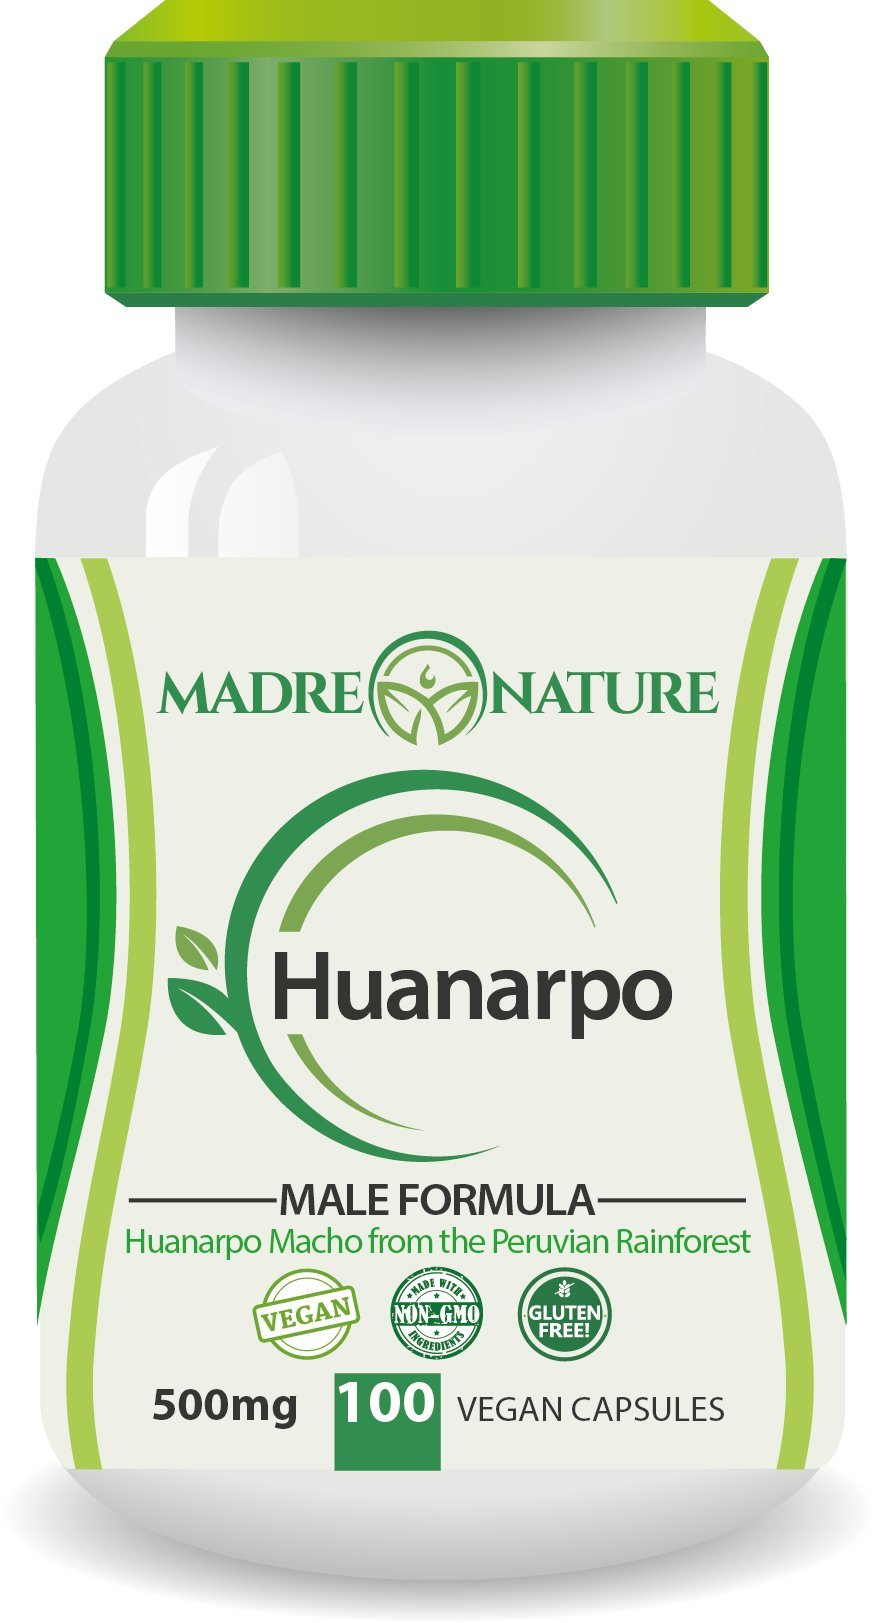 Madre Nature Wildcrafted Huanarpo Powder Capsules for Men: Male Enhancing Supplement Supports: Antioxidant, Anti-Inflammatory (1-Pack)